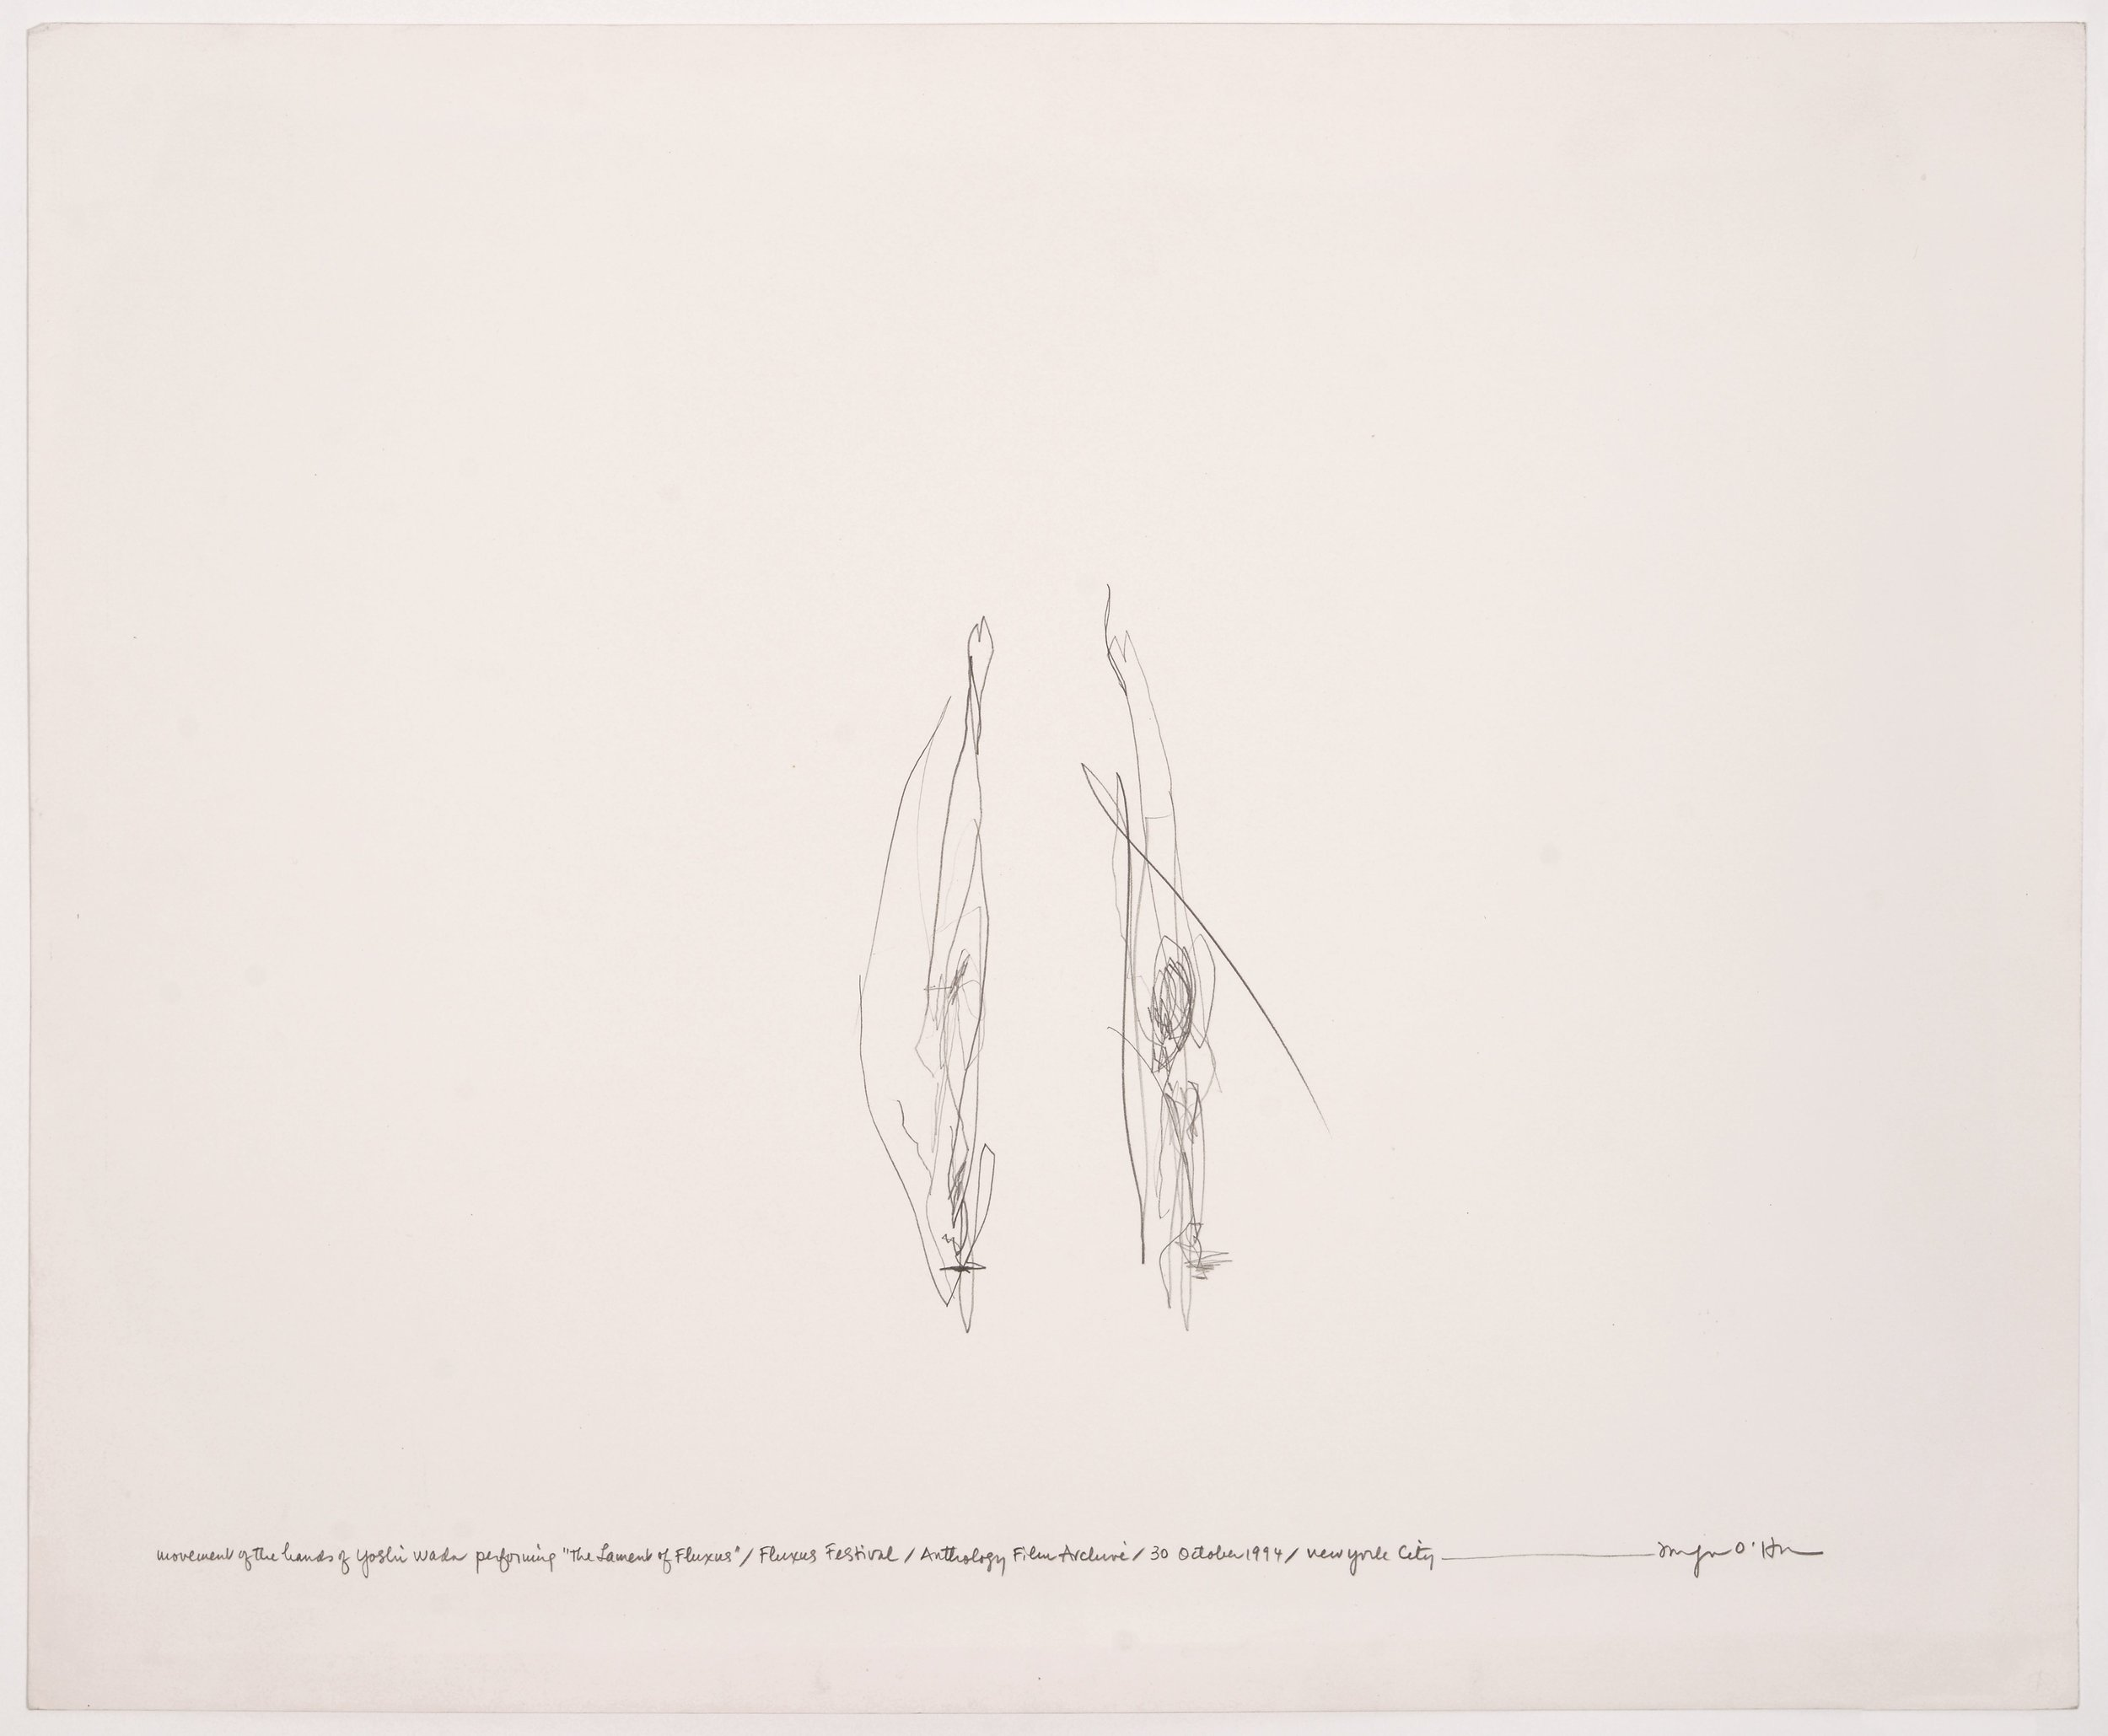 Morgan O'Hara, LIVE TRANSMISSION: movement of the hands of YOSHI WADA while performing The Lament of Fluxus / Fluxus Festival / Anthology Film Archives / Sunday 30 October 1994 / New York City, 14 x 17 in.,Graphite on Bristol paper, 1994